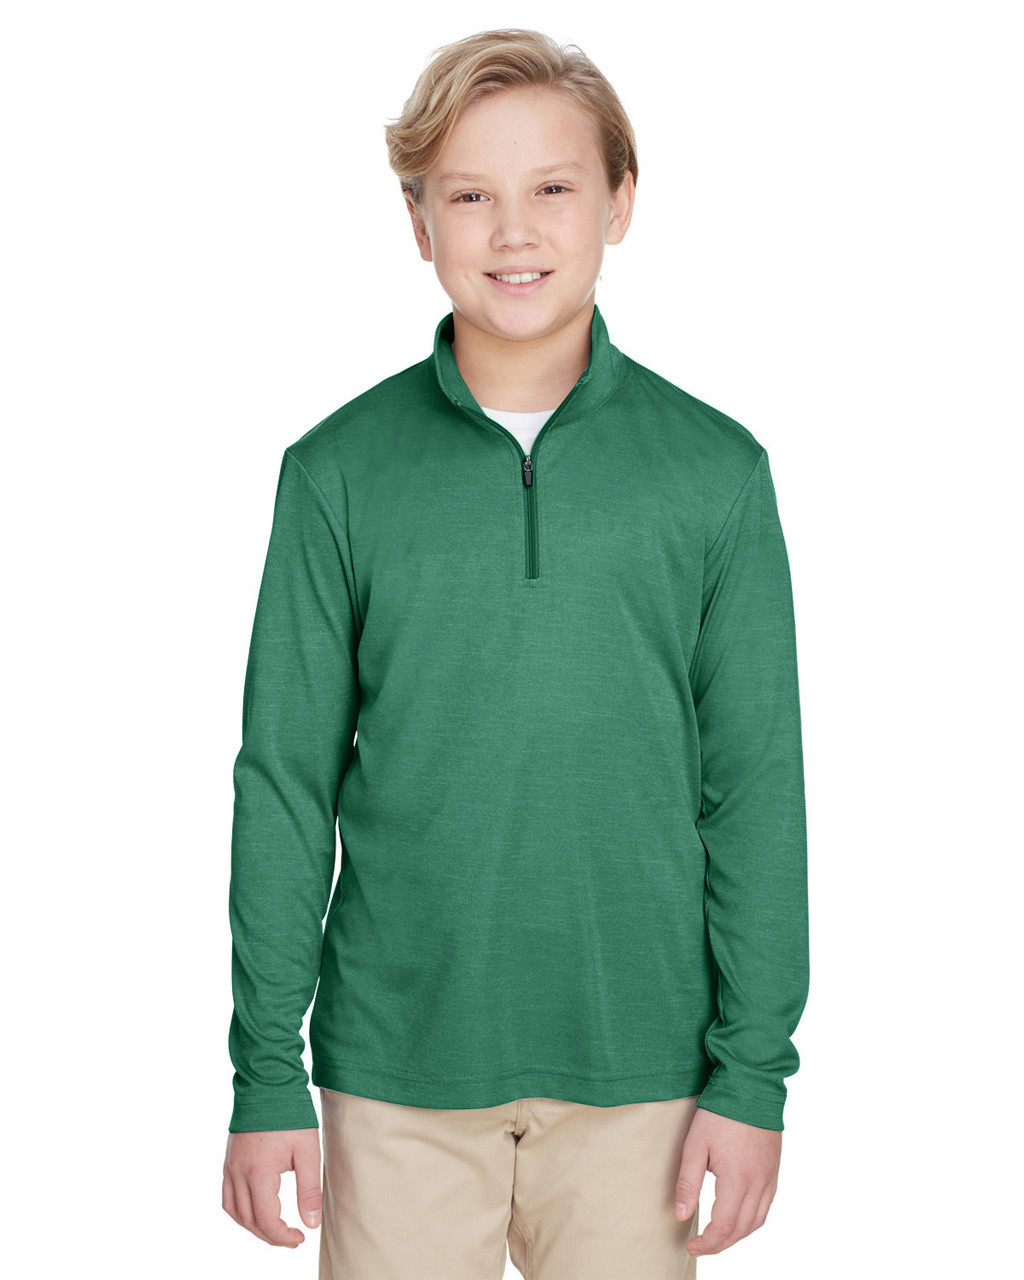 Sport Forest Heather - TT31HY Team 365 Youth Zone Sonic Heather Performance Quarter-Zip Athletic Shirt | BlankClothing.ca